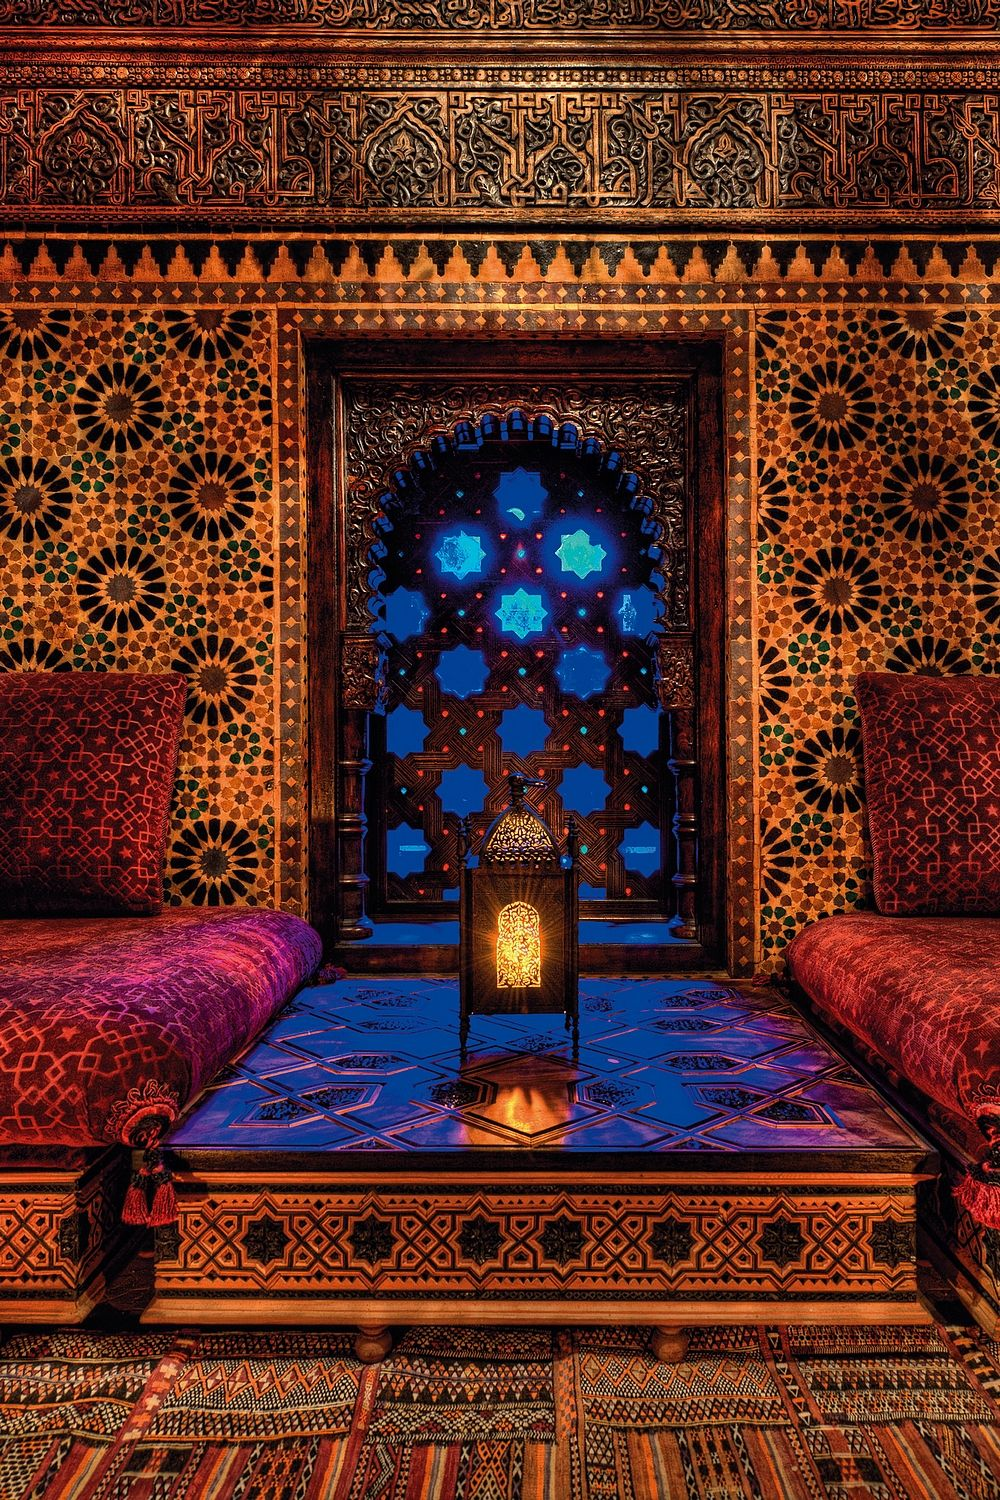 serge lutens palace marrakech luxury property in marrakesh 1000 1500 decor. Black Bedroom Furniture Sets. Home Design Ideas